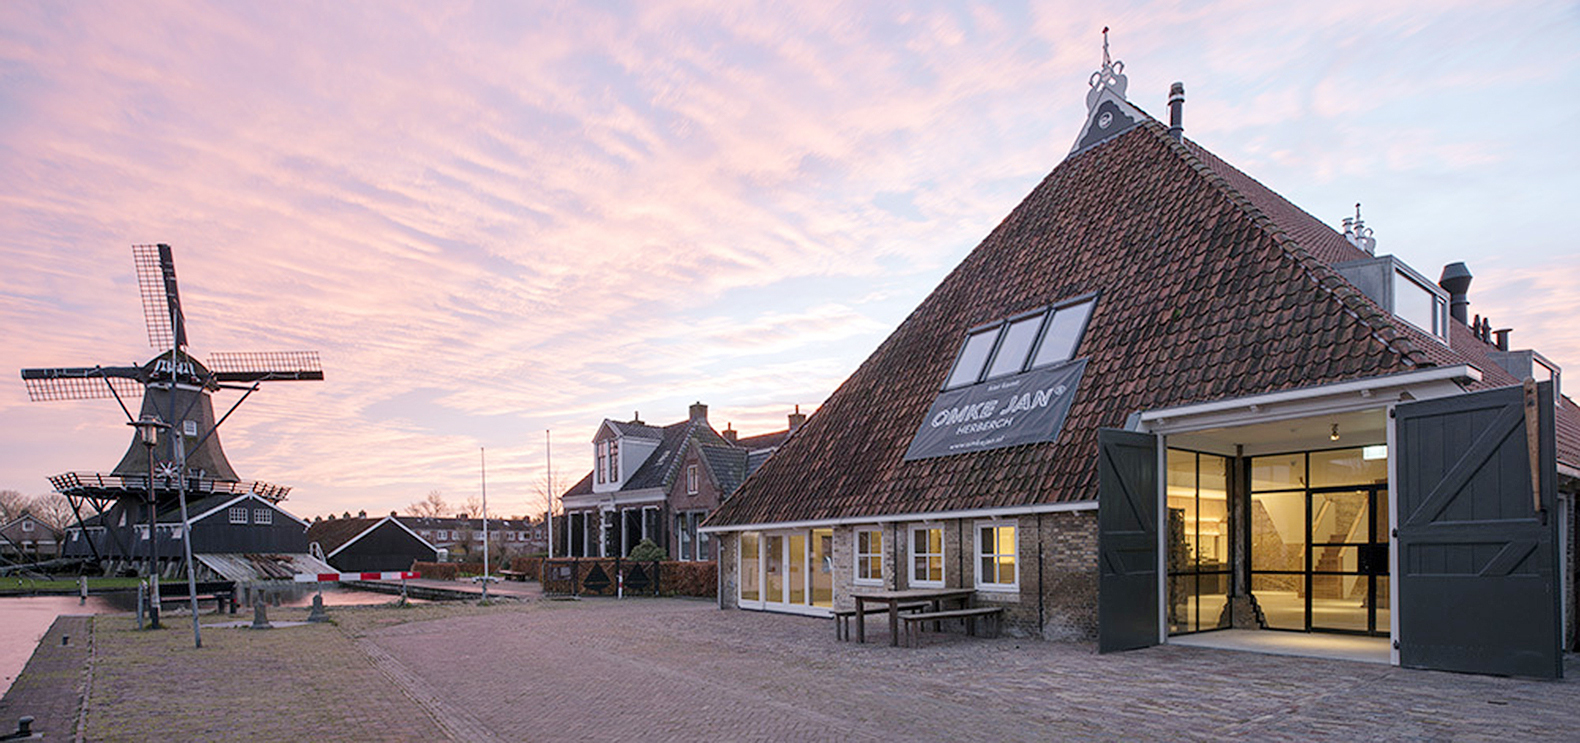 An Extensive Renovation Turned This Historic Farmhouse In The Netherlands Into A Vibrant Meeting Place That Sources Its Food From Local Farms Architecture